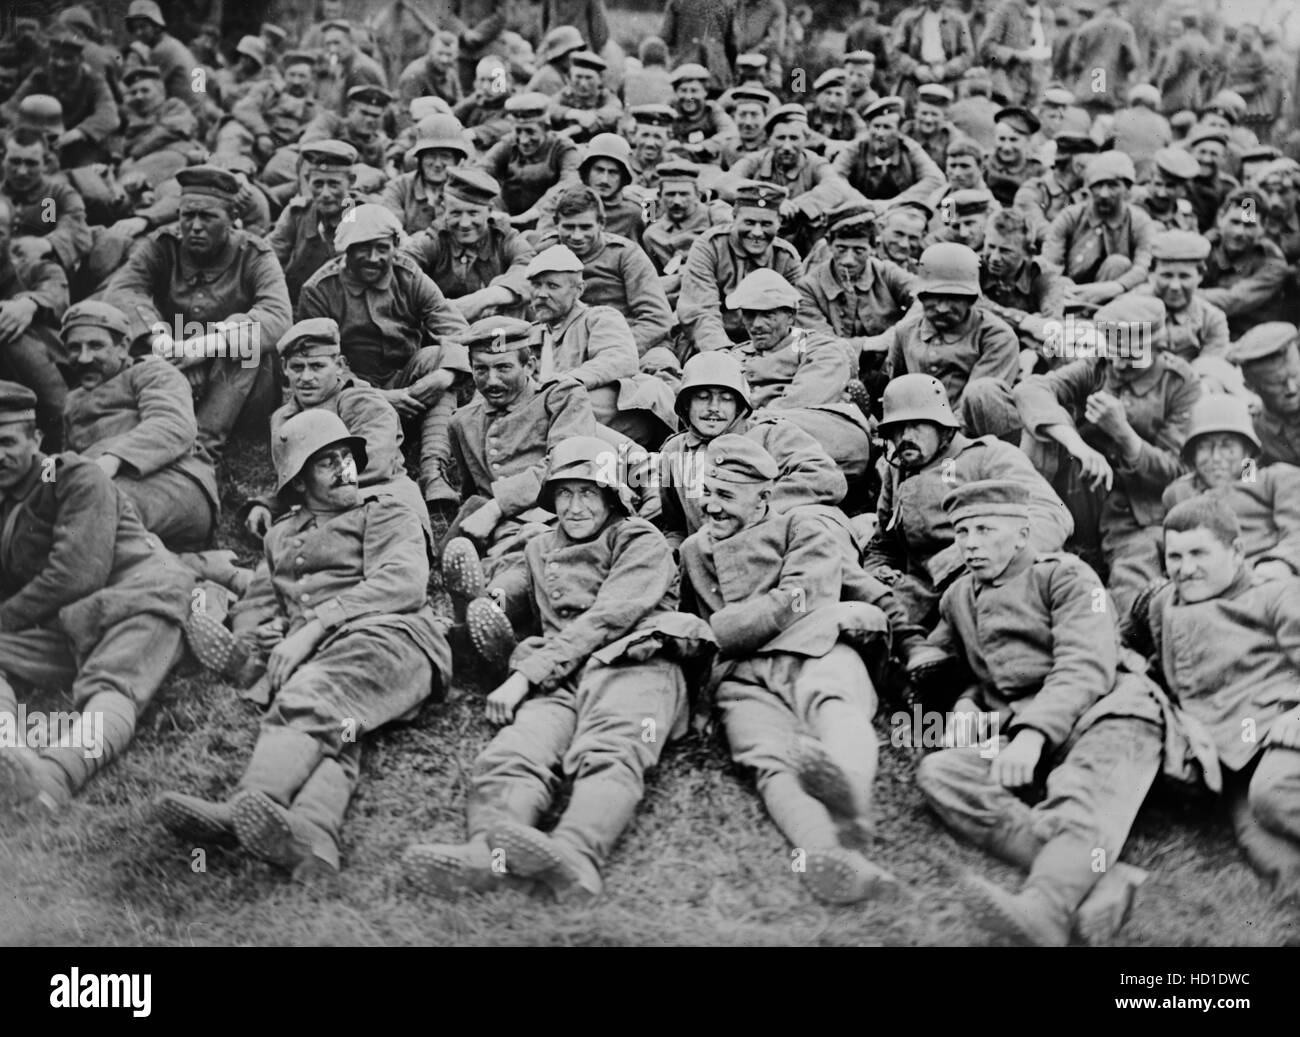 German Prisoners of War Captured by British Forces at Battle of Messines, West Flanders, Belgium, Bain News Service, Stock Photo